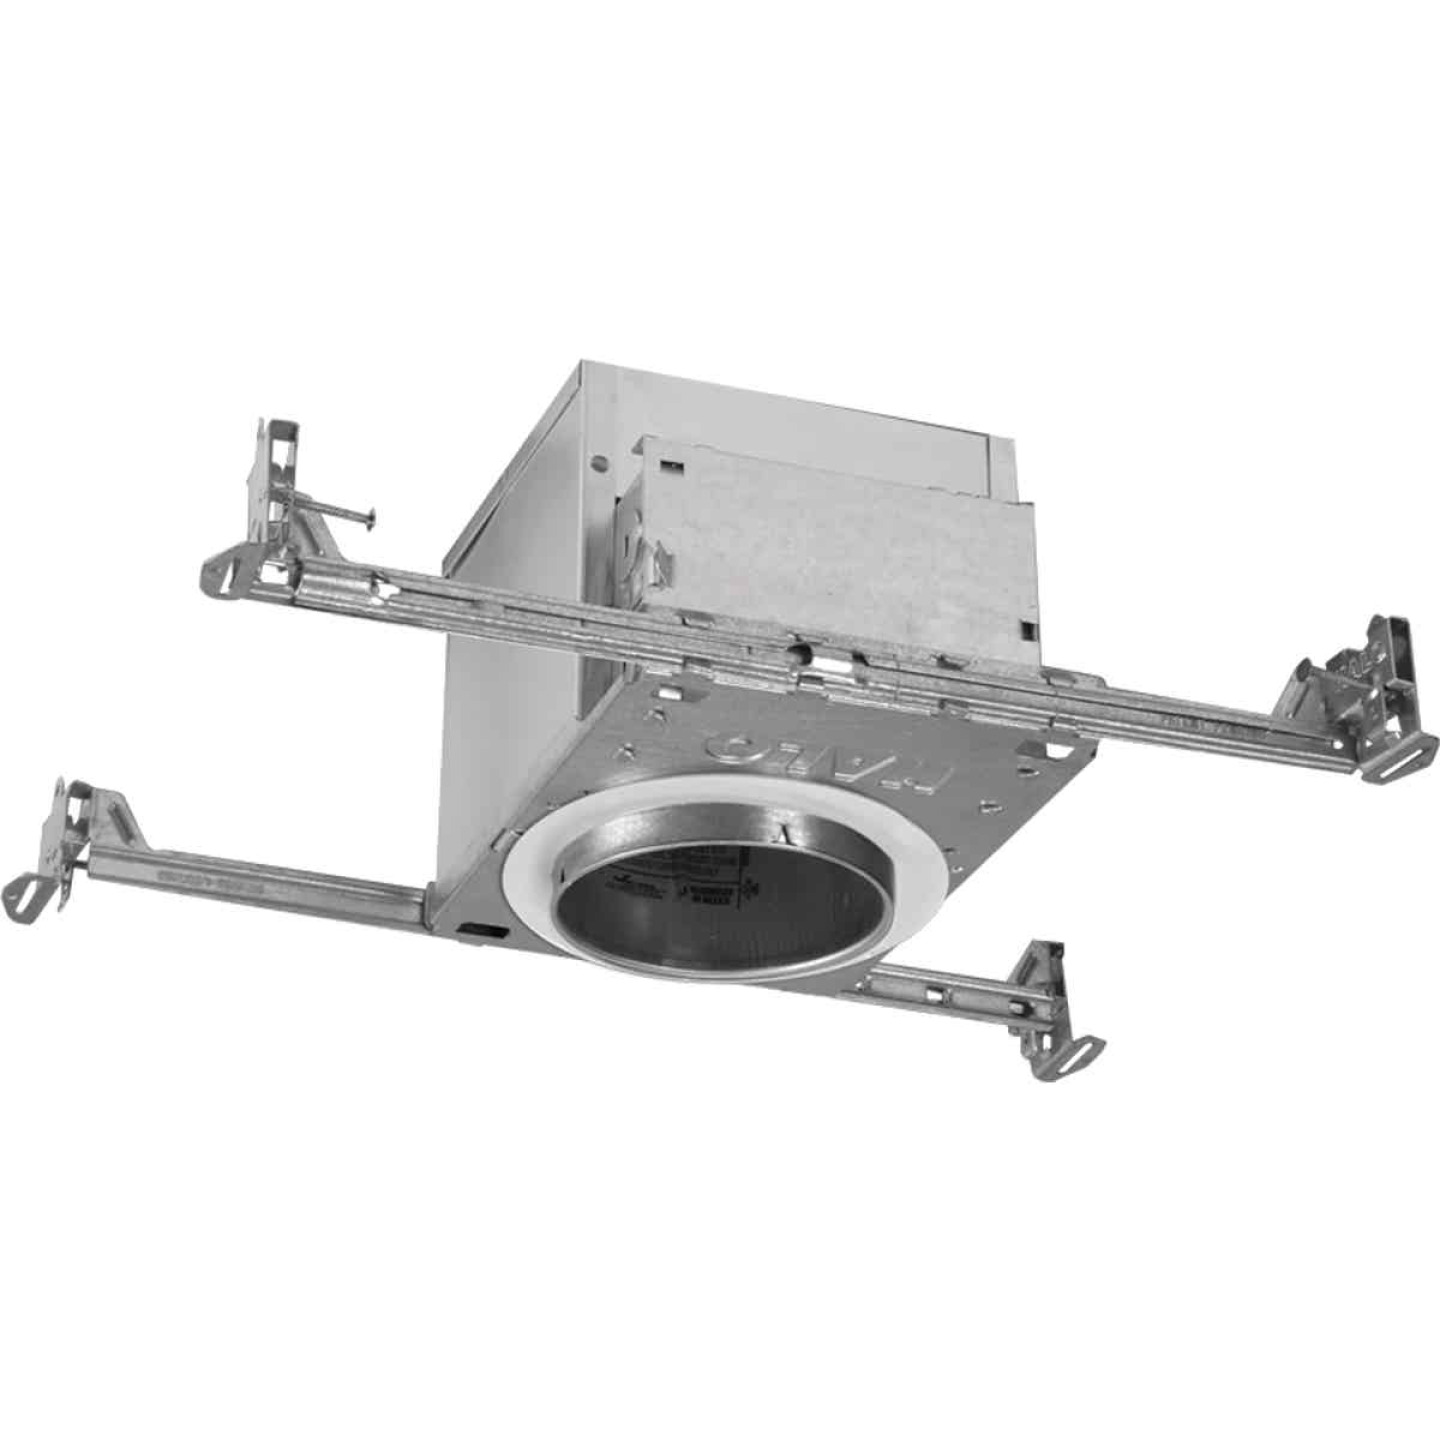 Halo Air-Tite 4 In. New Construction IC Rated LED Recessed Light Fixture Image 1